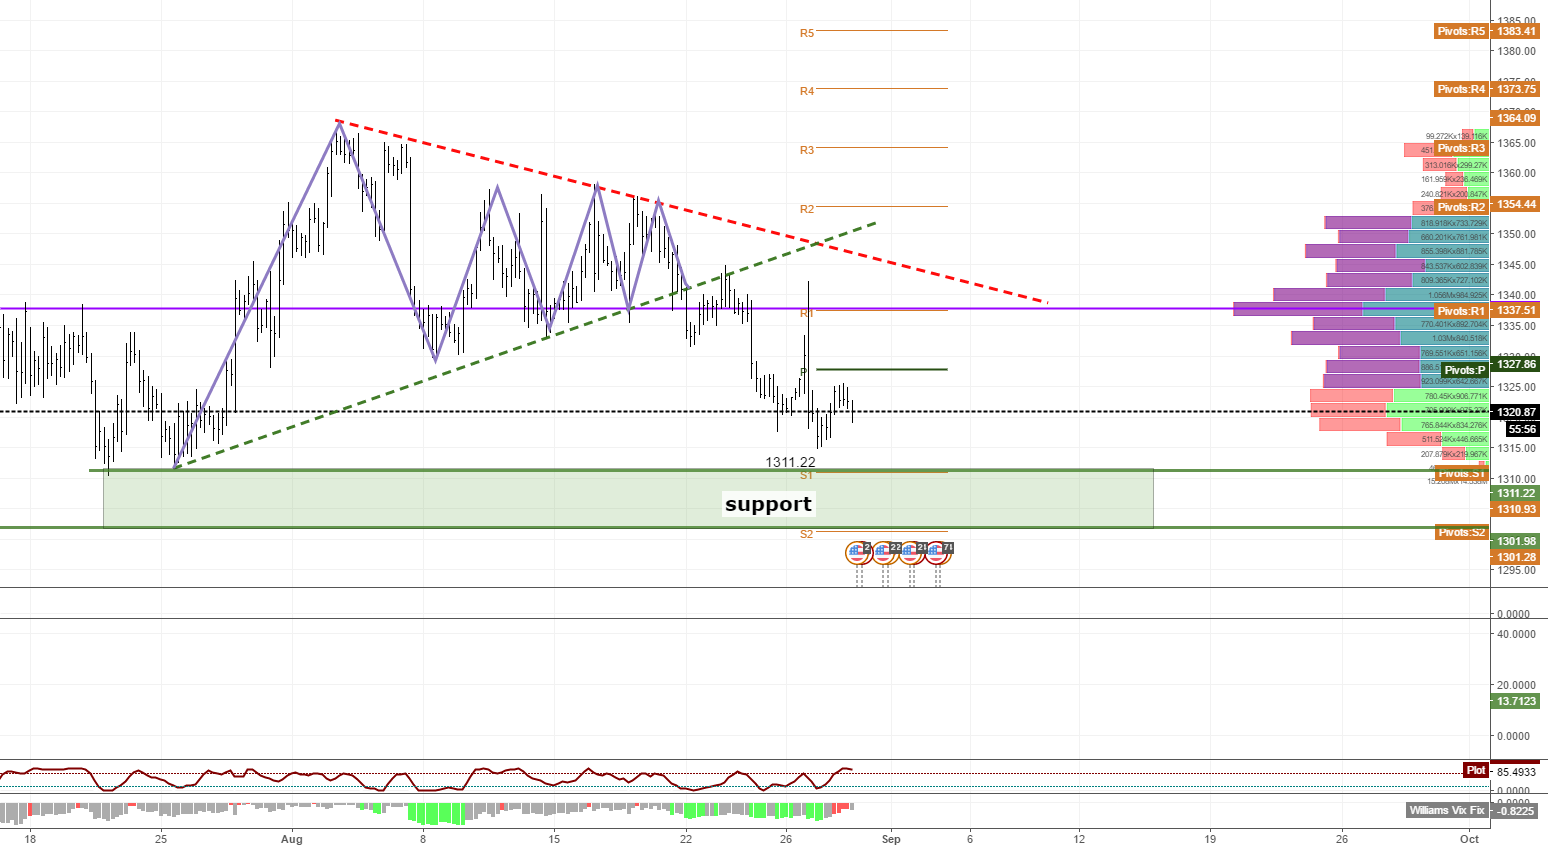 xauusd support 1303 to 1311